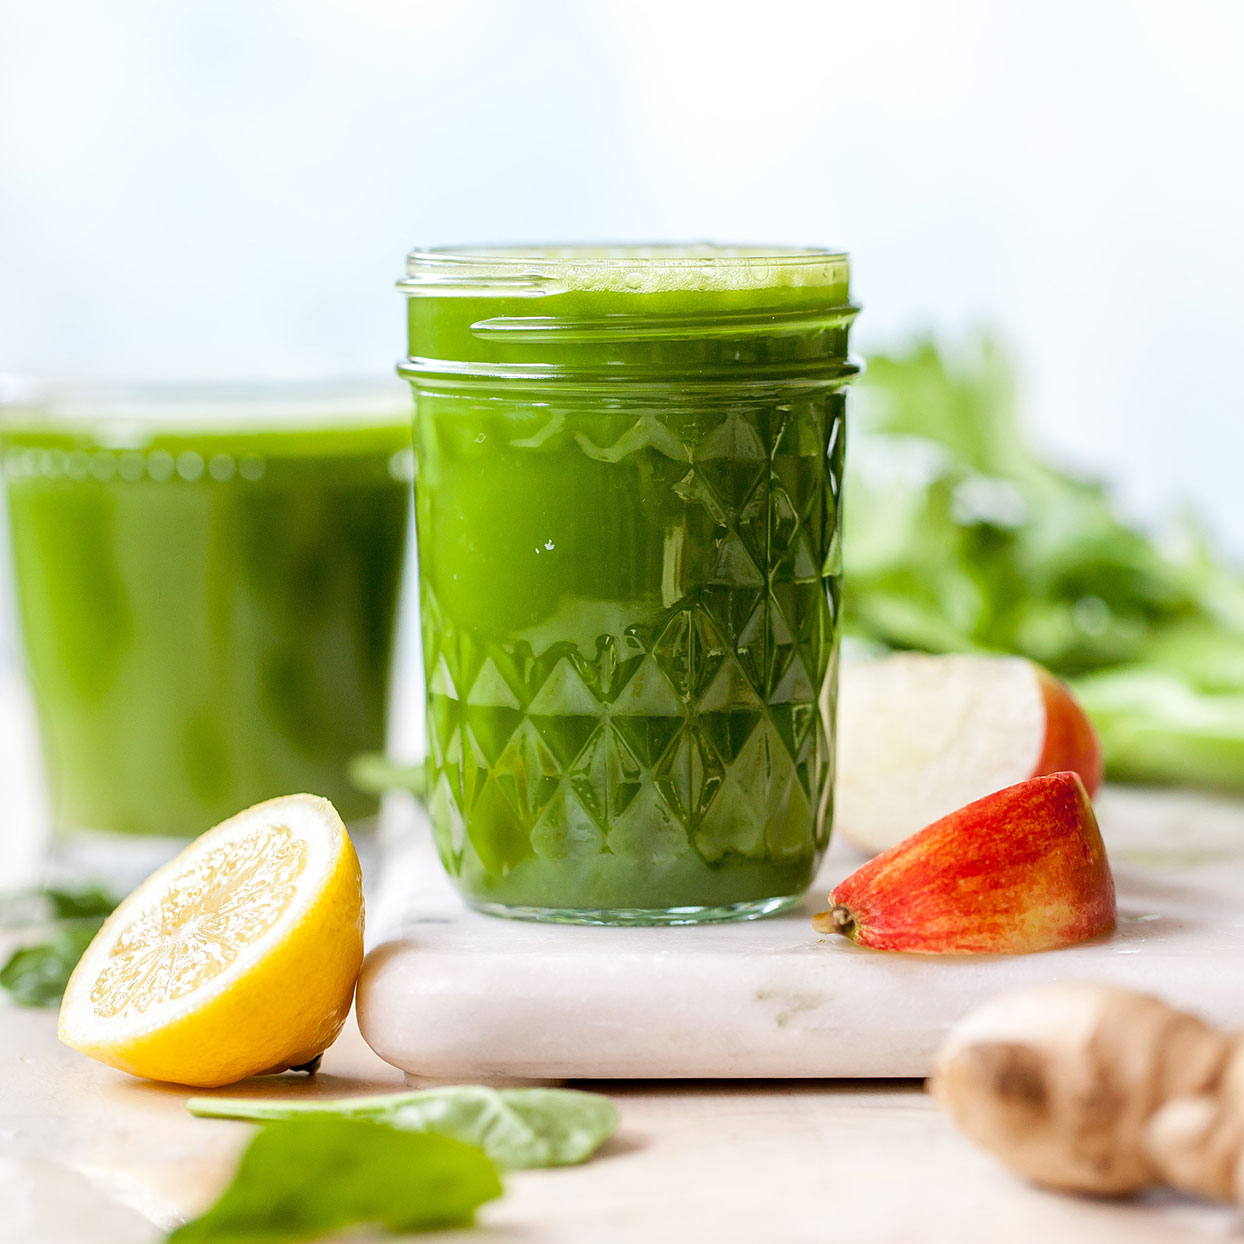 Green Spinach Superfood Shots Trusted Brands